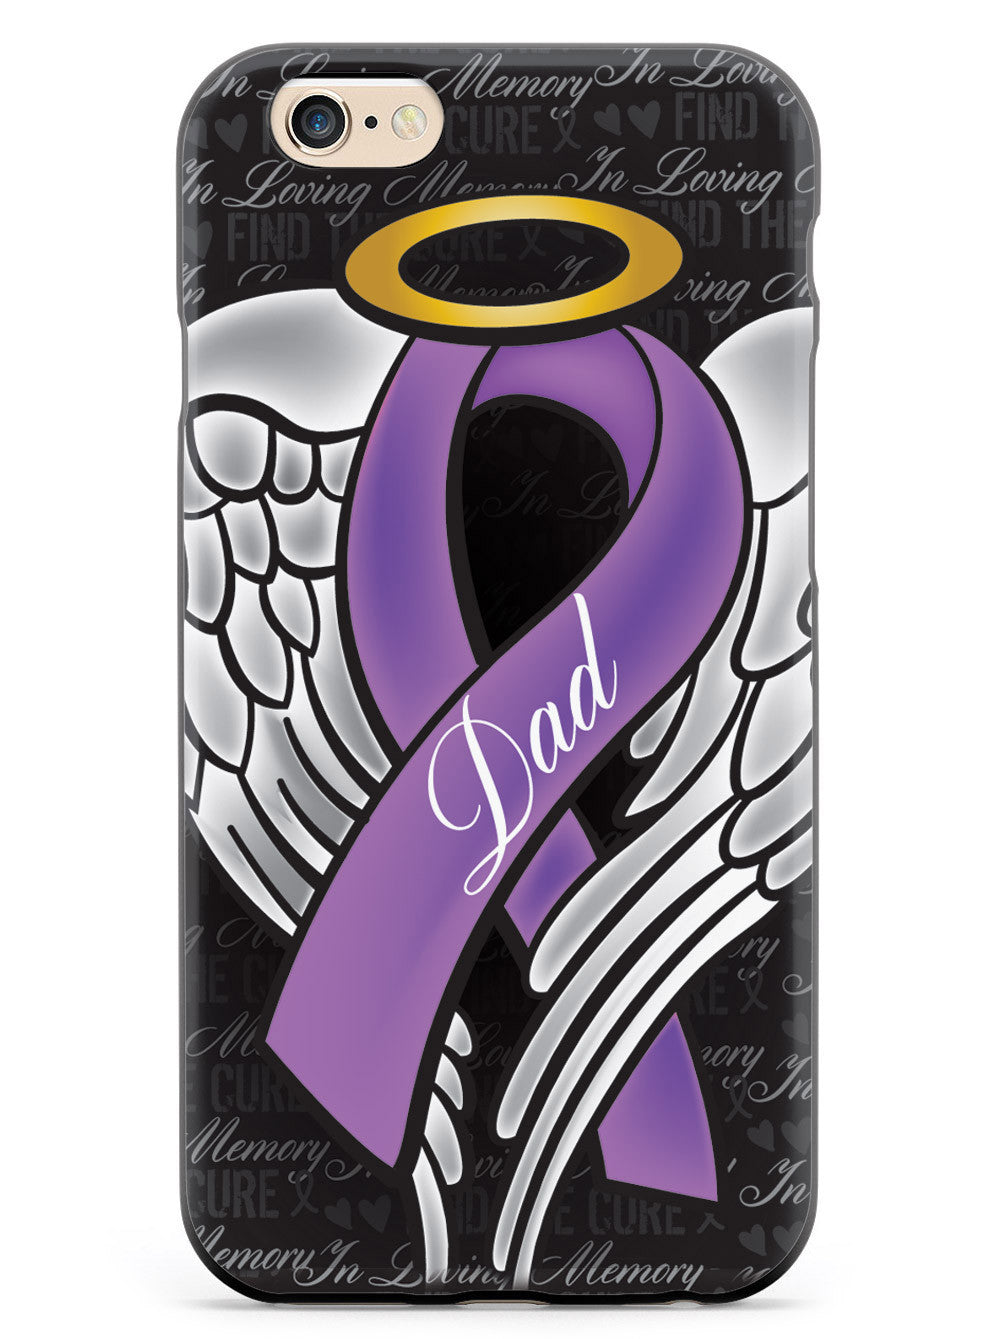 In Loving Memory of My Dad - Purple Ribbon Case